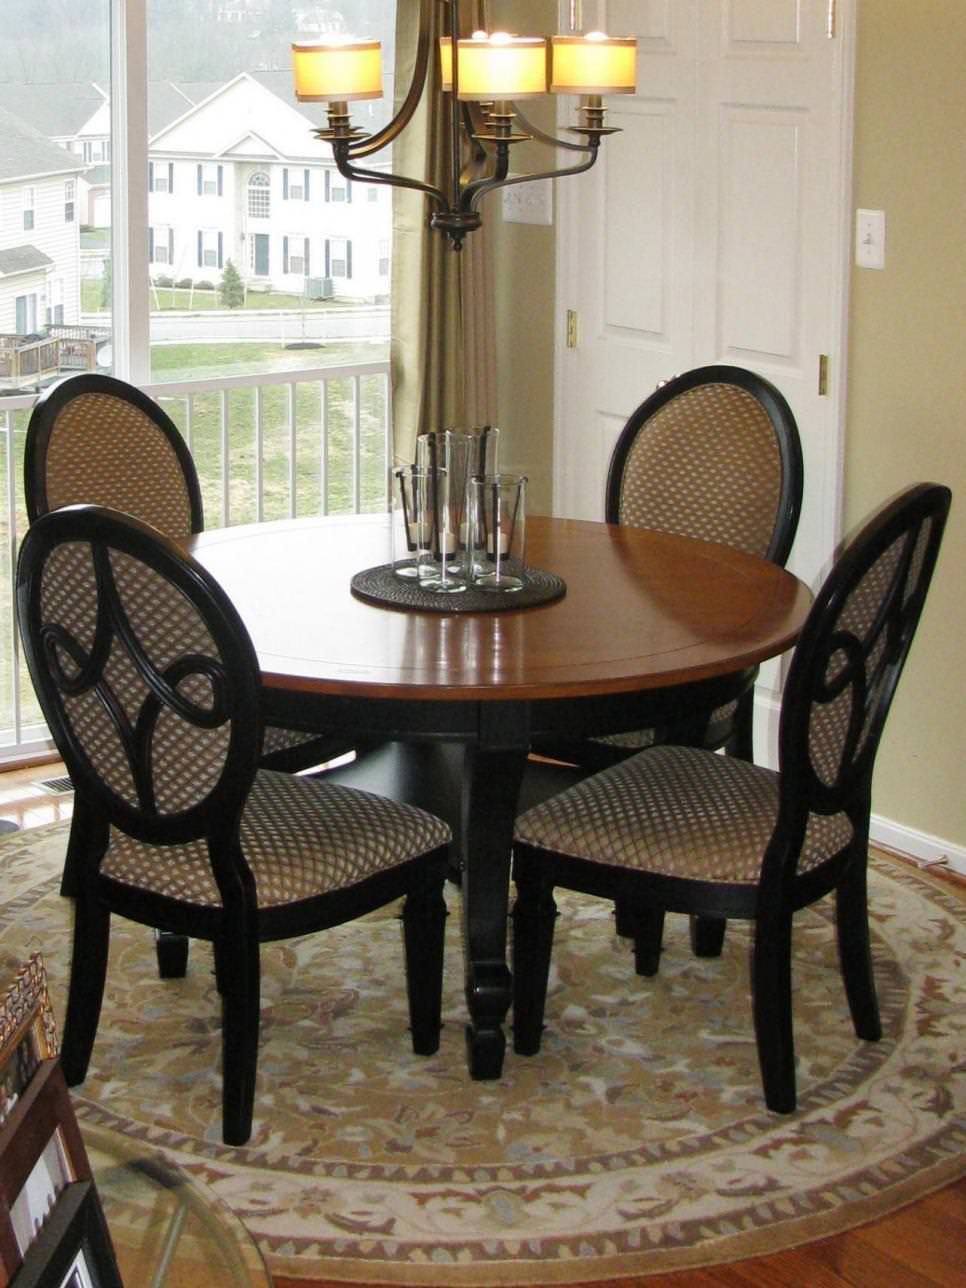 23 Small Dining Table Designs Decorating Ideas Design